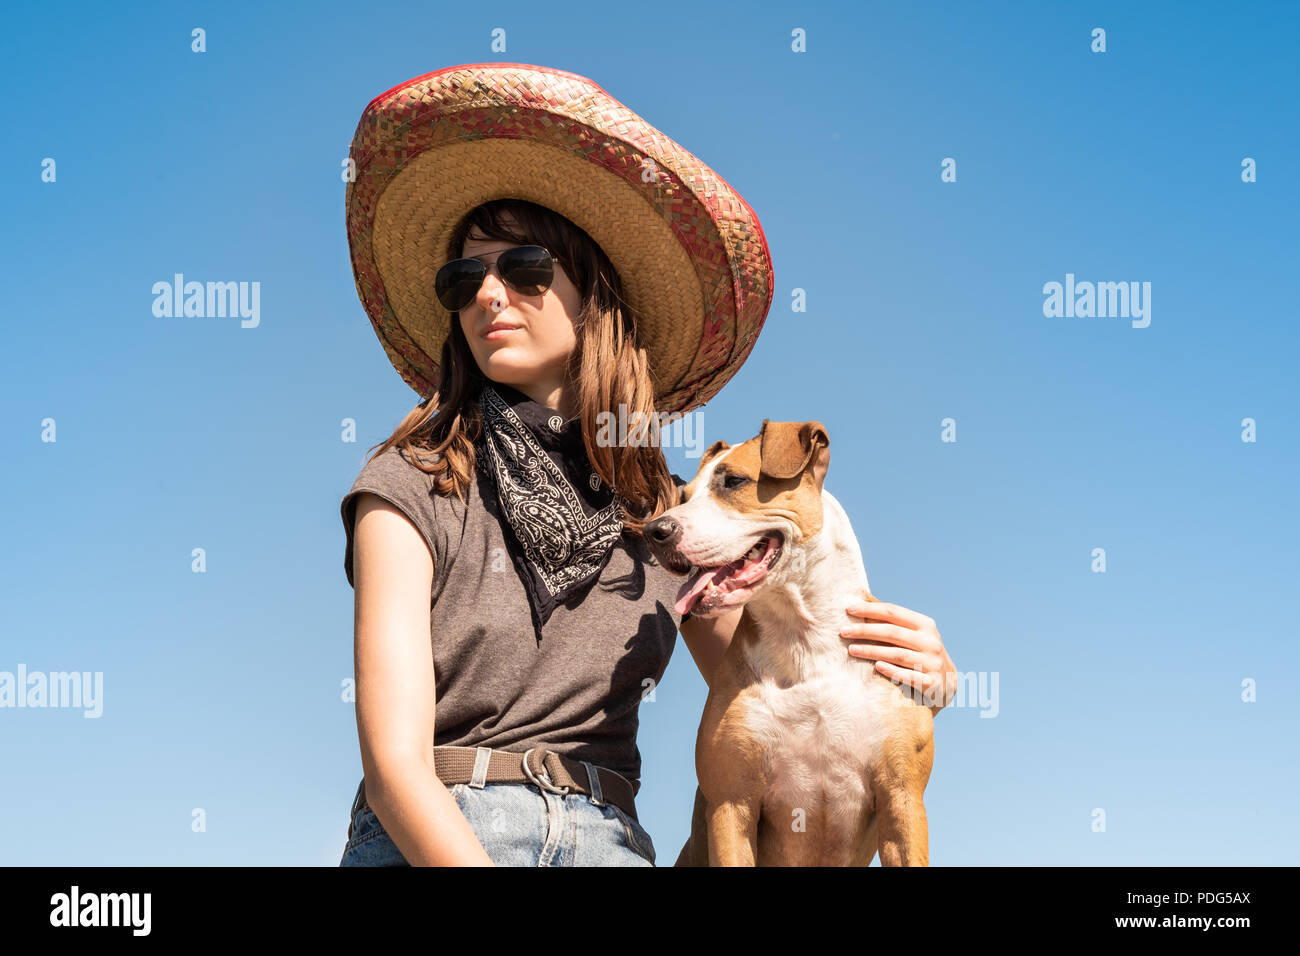 Beautiful girl in mexican hat dressed up as bandit of gangster with dog in cool sunglasses. Female person in sombrero hat and bandana posing with pupp - Stock Image